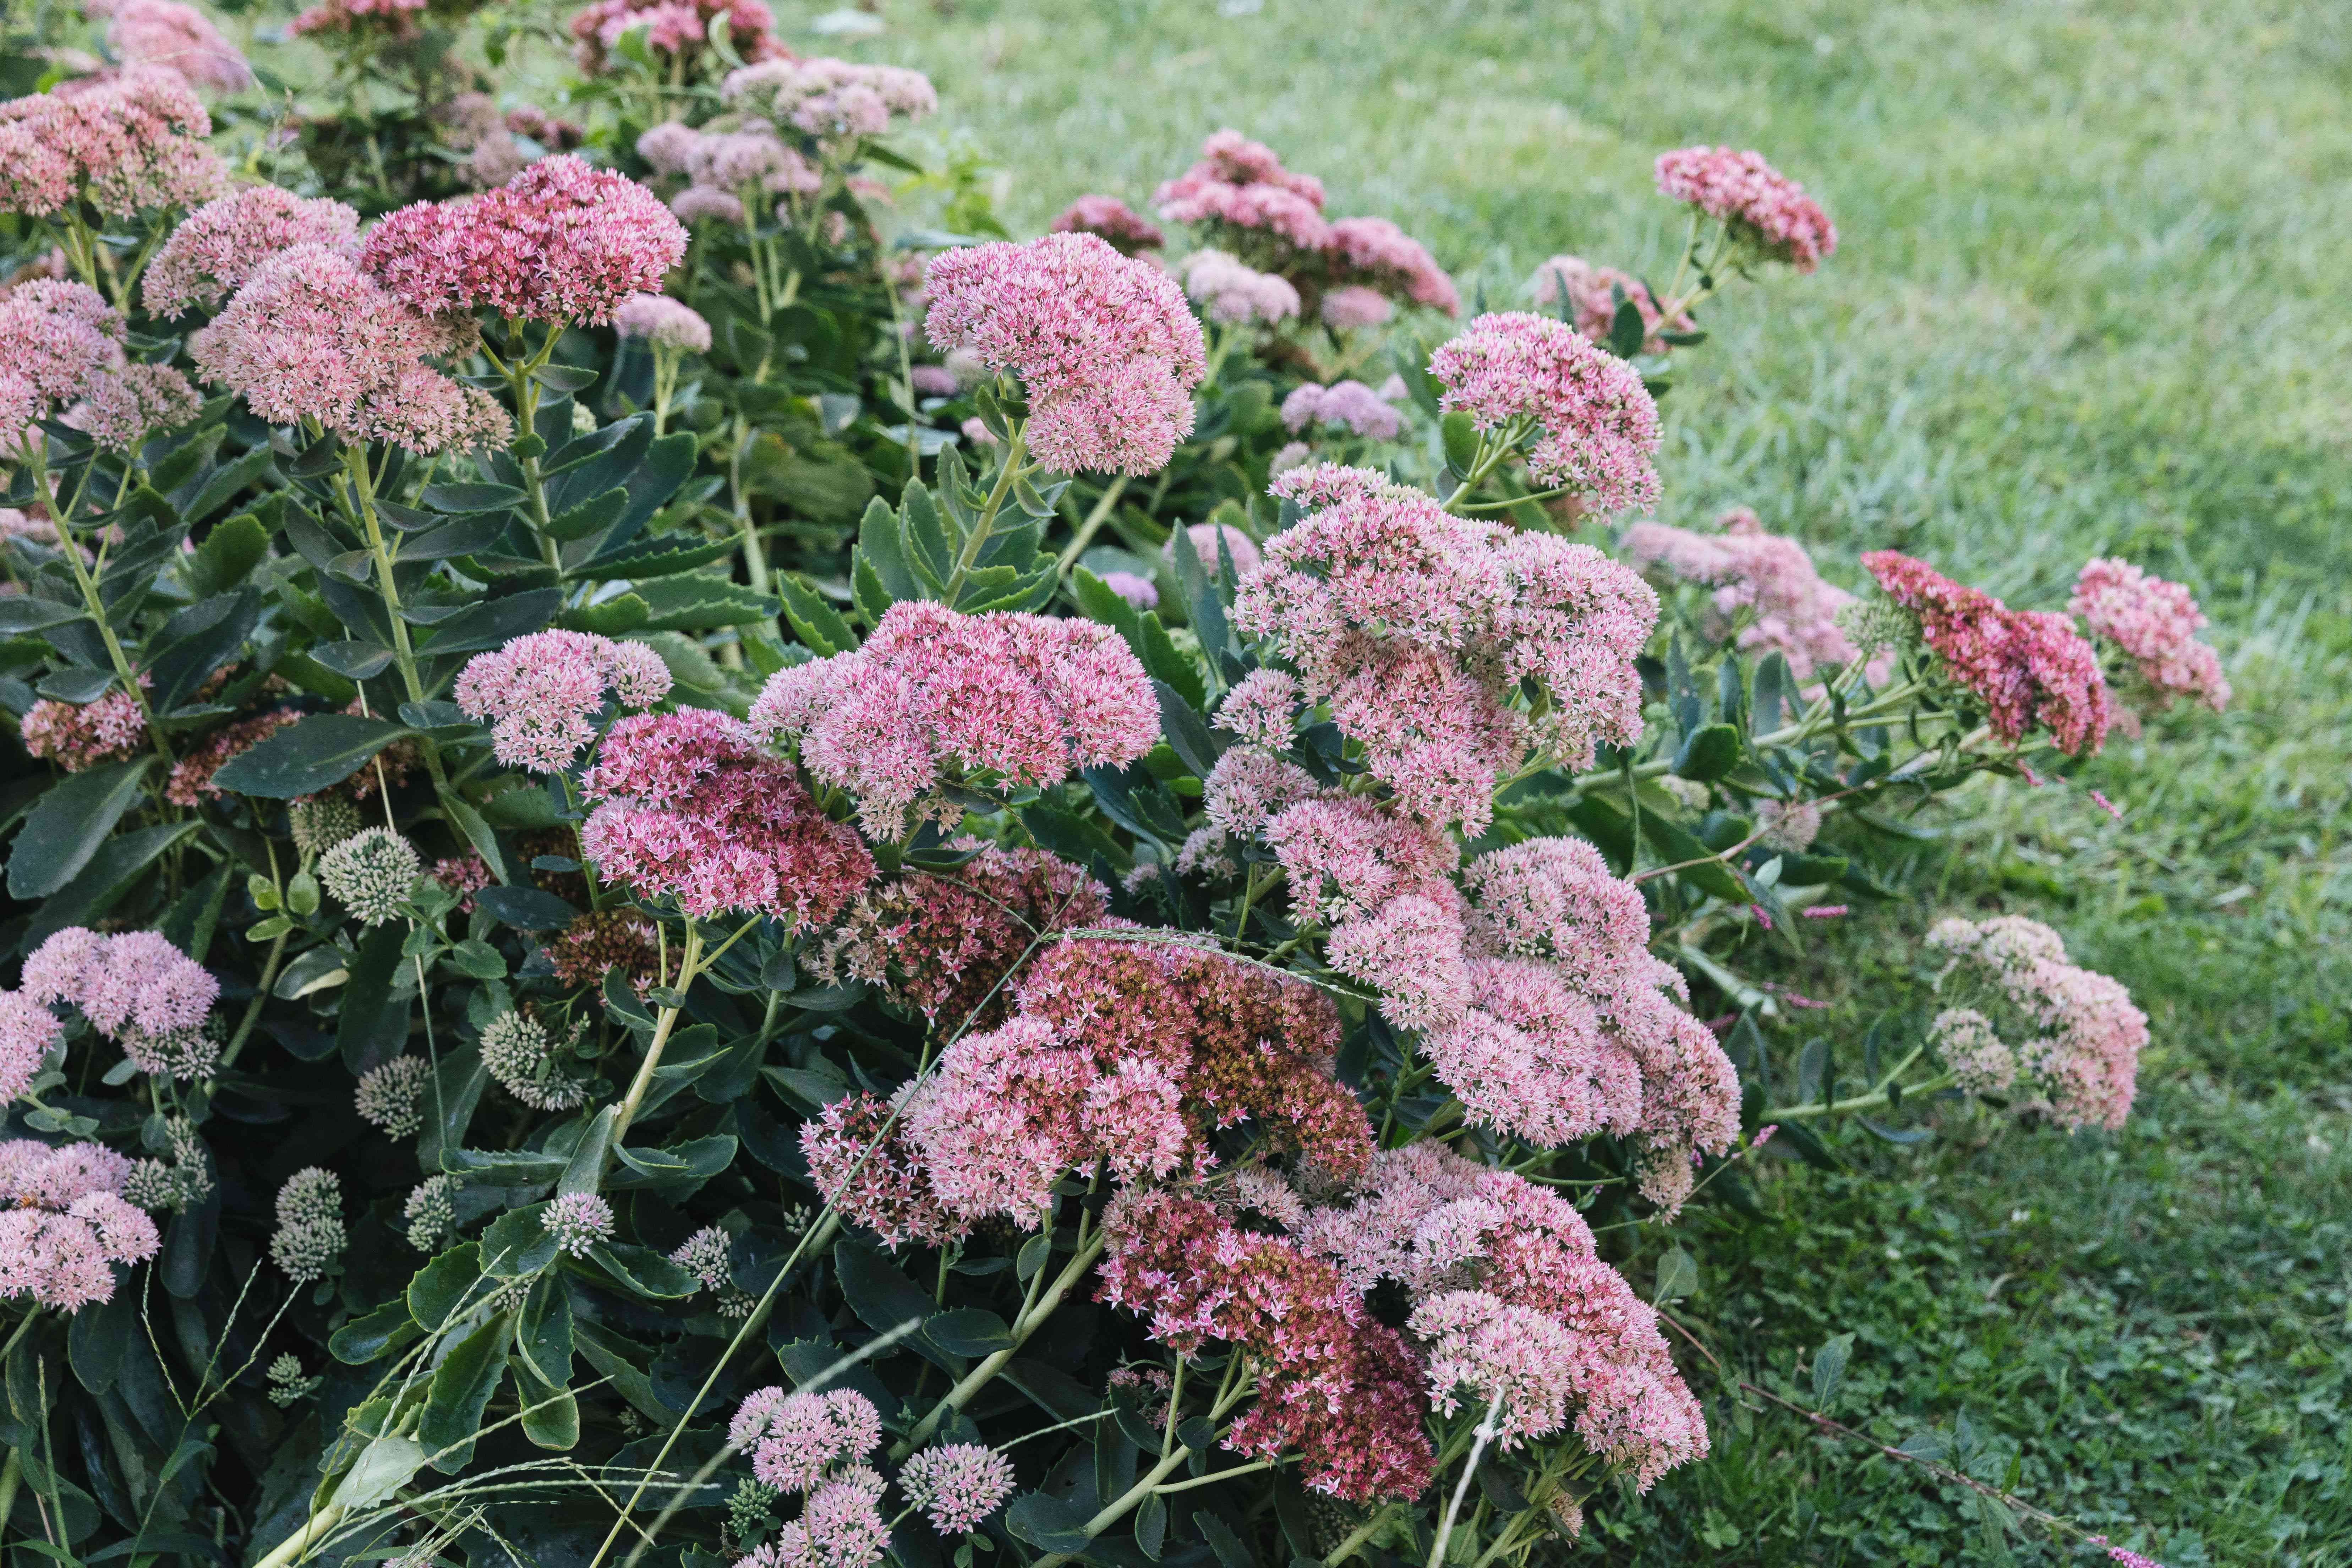 Autumn joy stonecrop plant with light pink flattened flower clusters on tall stems